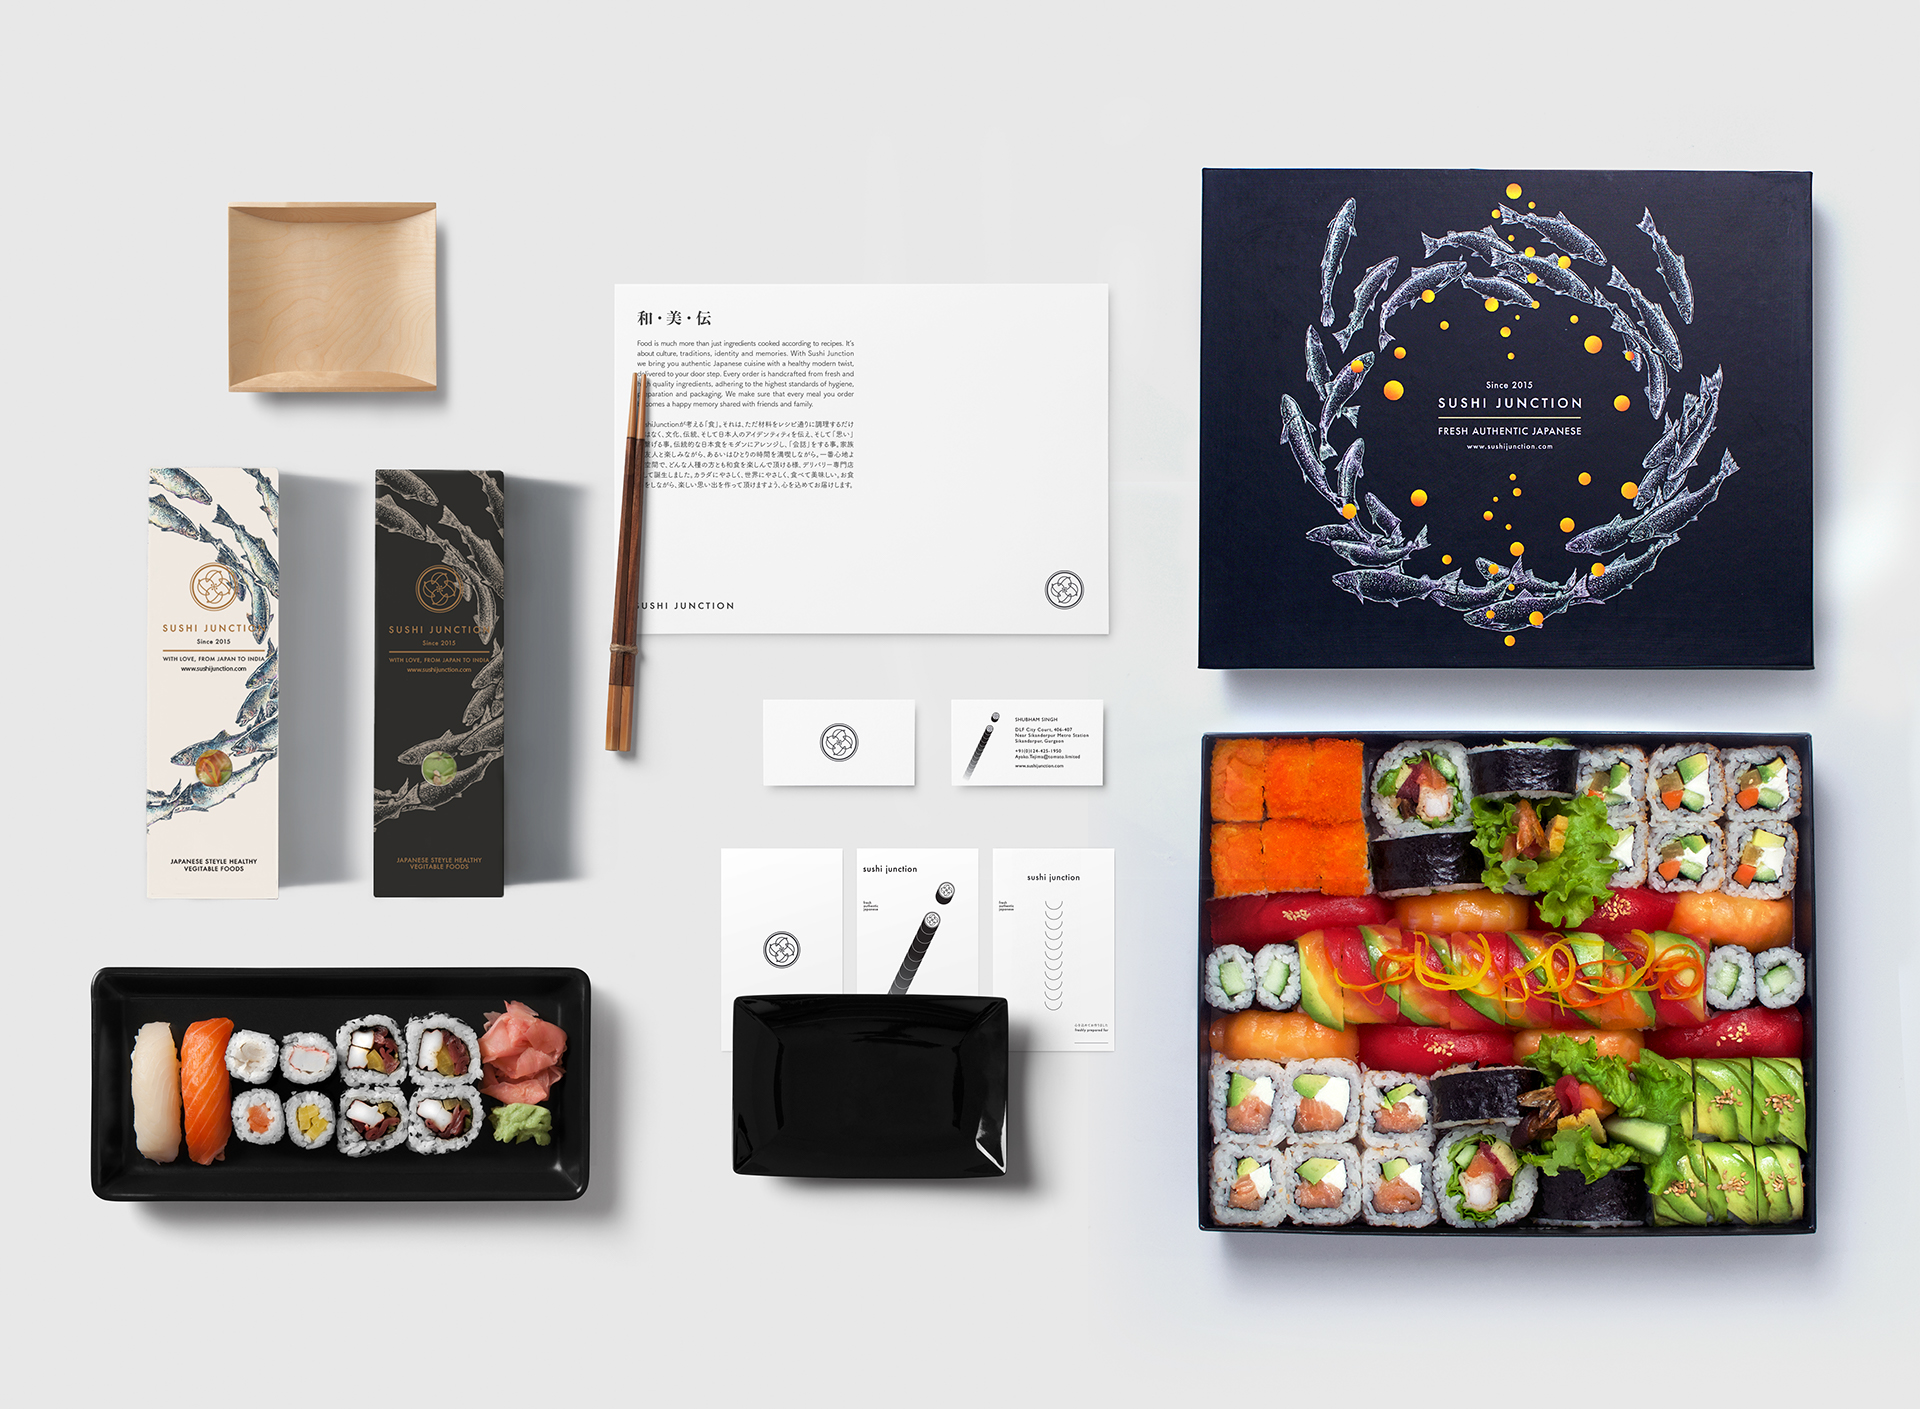 Branding for Sushi Junction by Lee Ching Tat